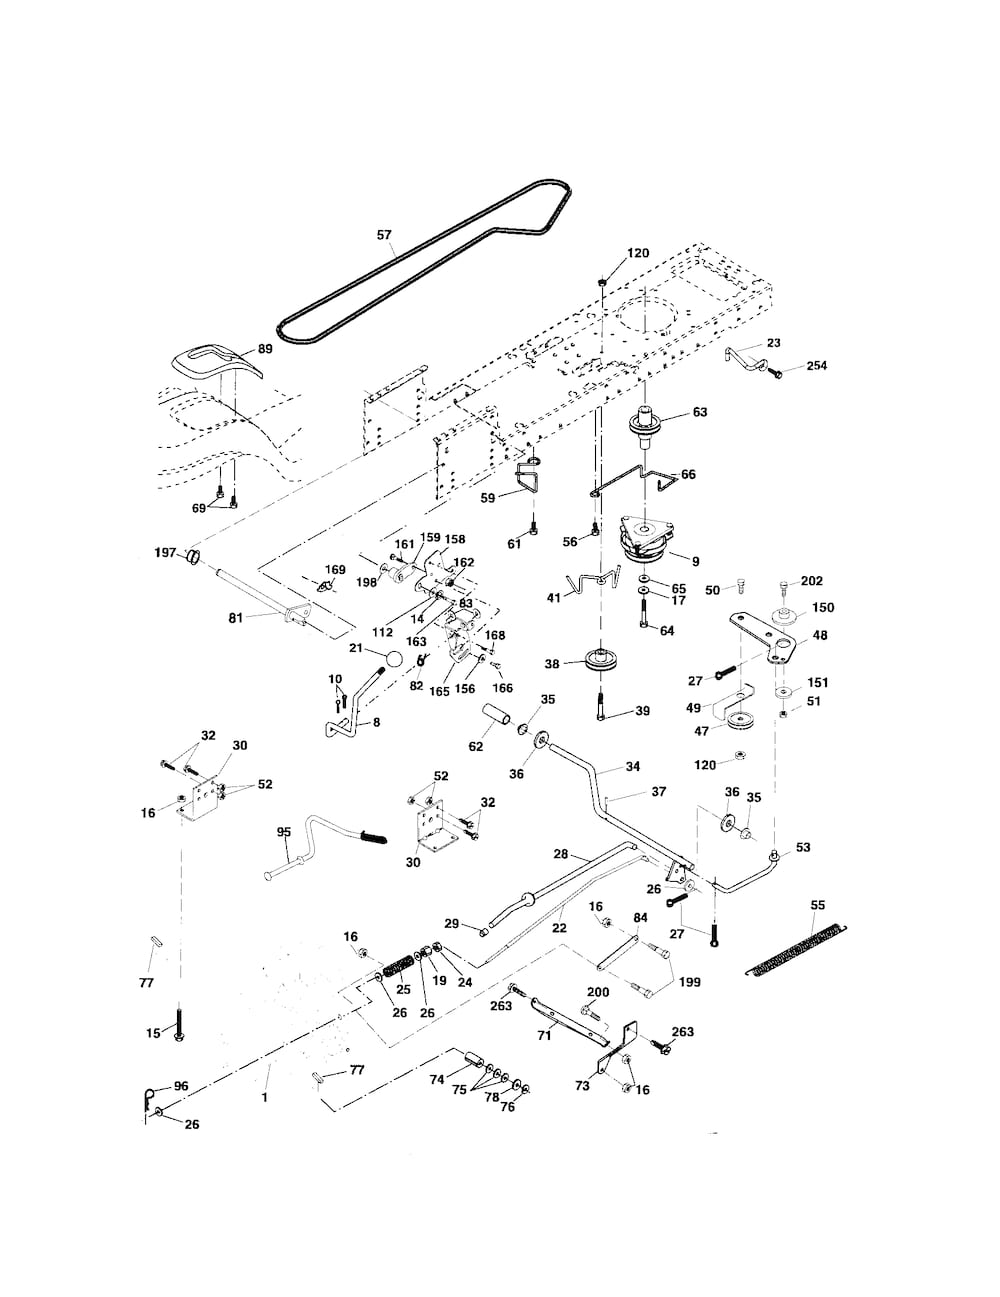 ... and Parts List for POULAN Riding-Mower-Tractor-Parts model # PK20H48YT